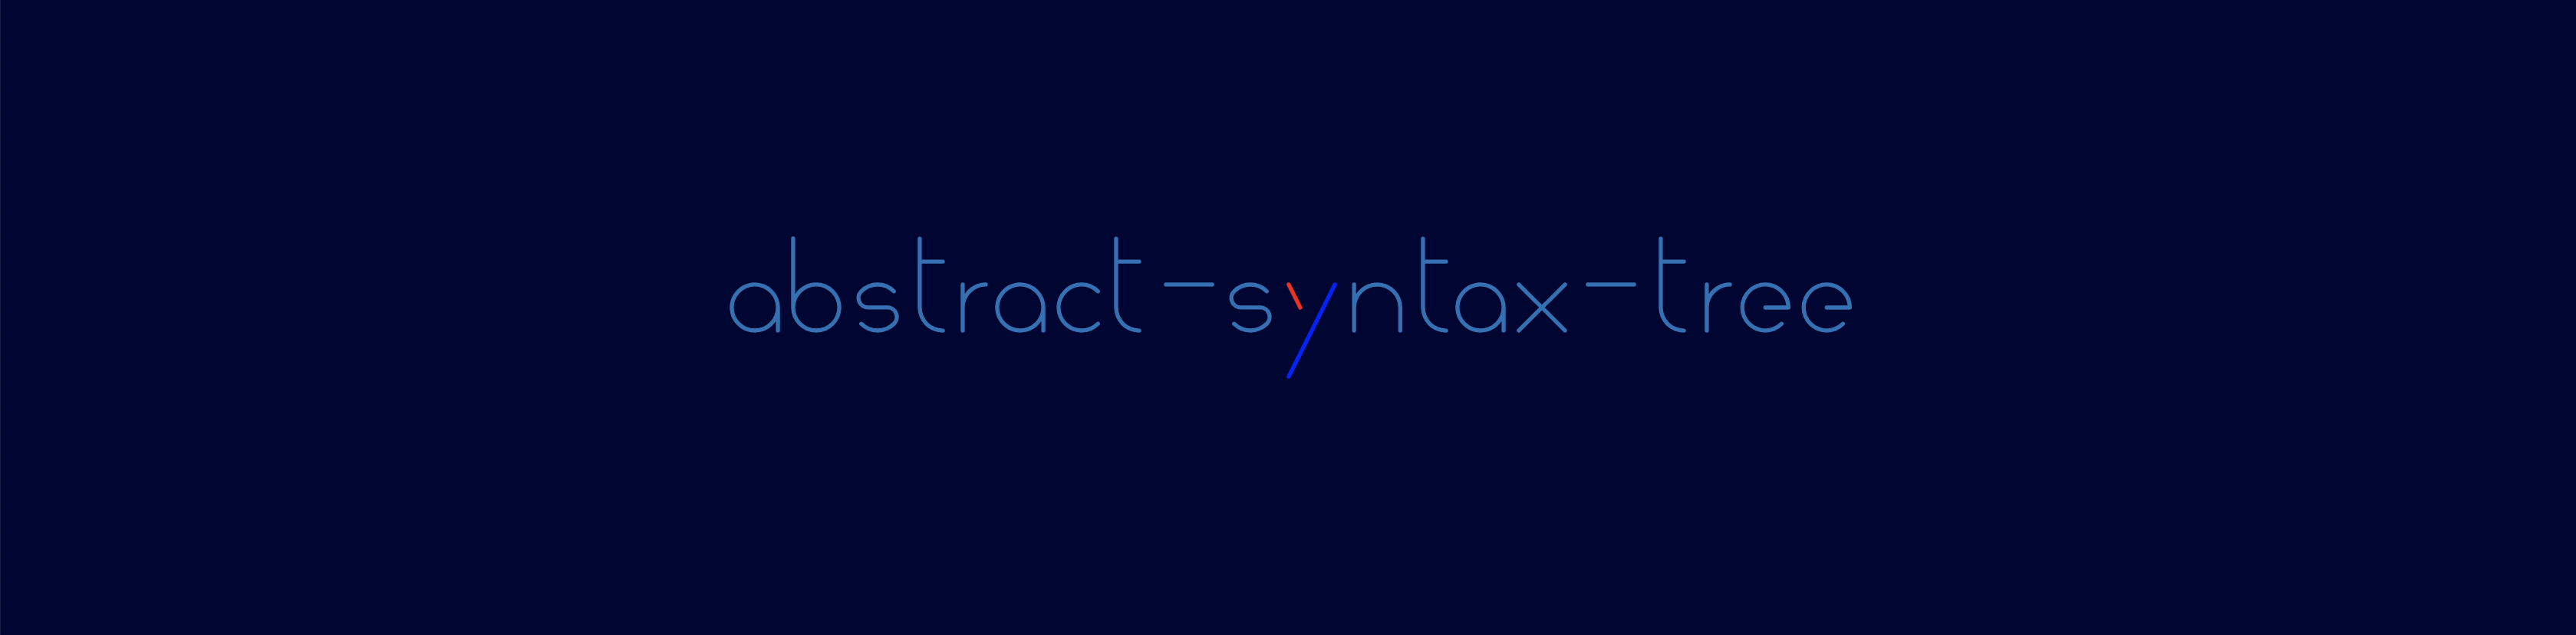 abstract-syntax-tree